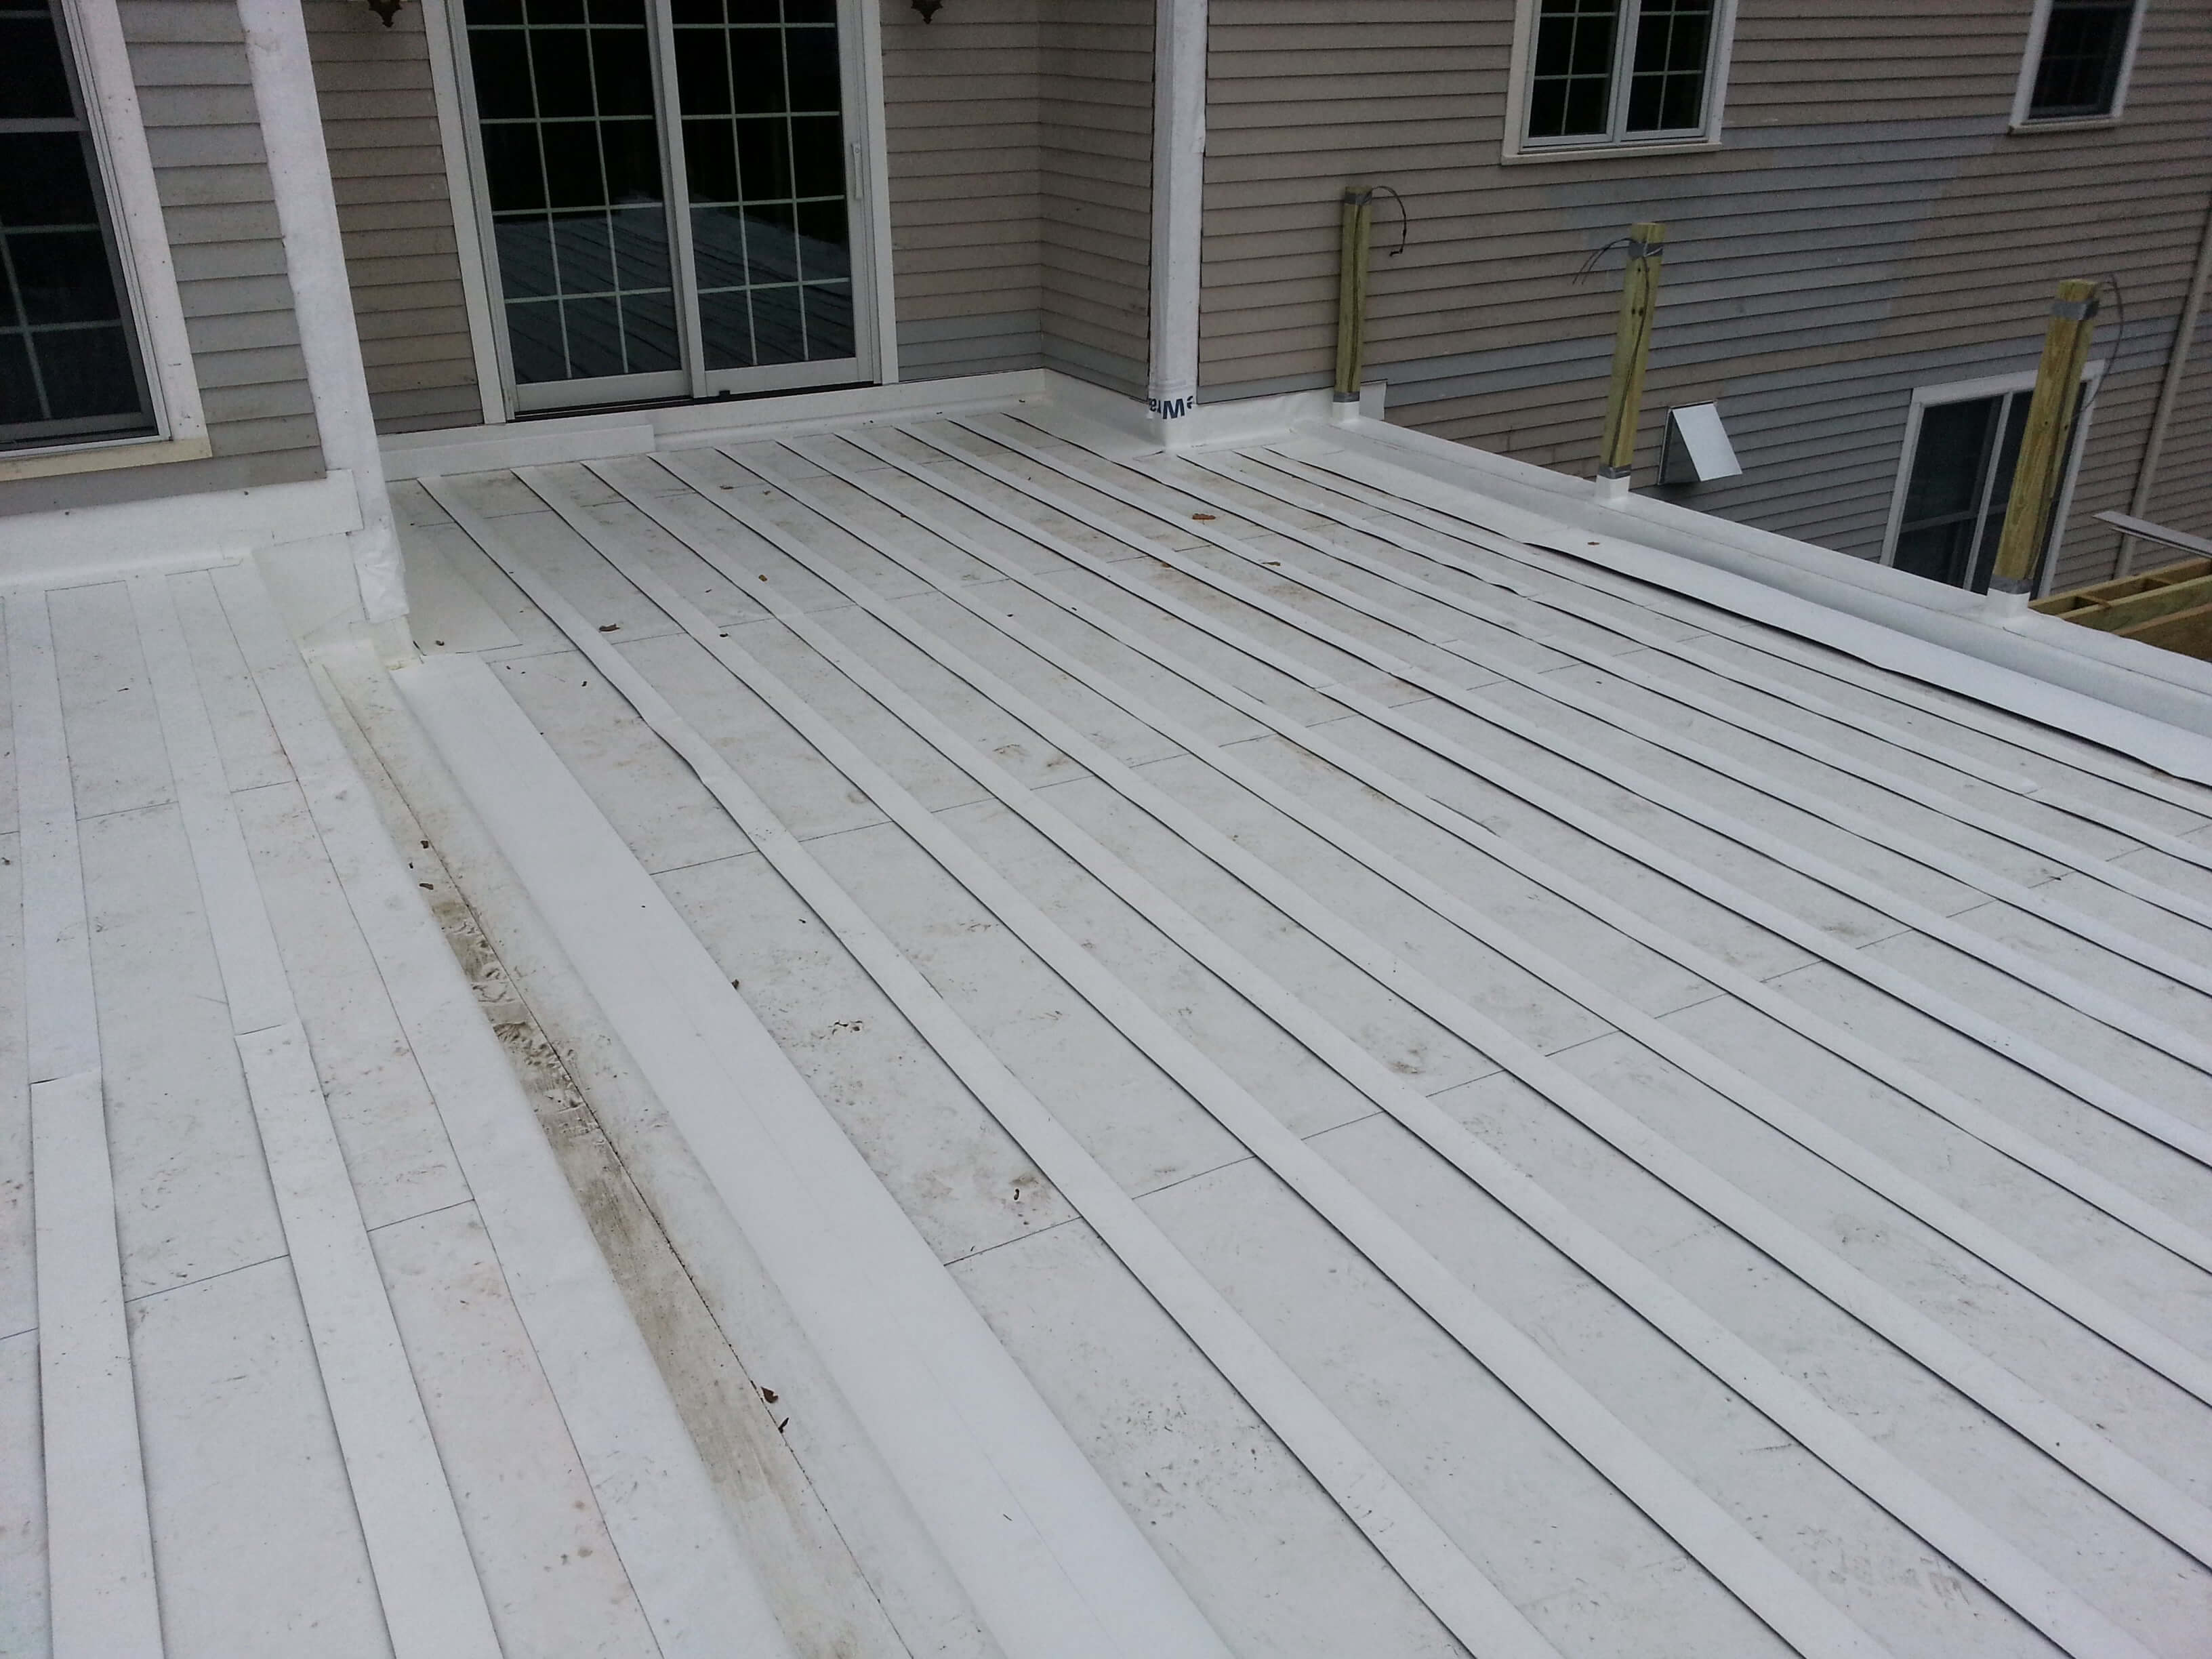 Pvc Roof Installation Under Floating Wooden Deck In